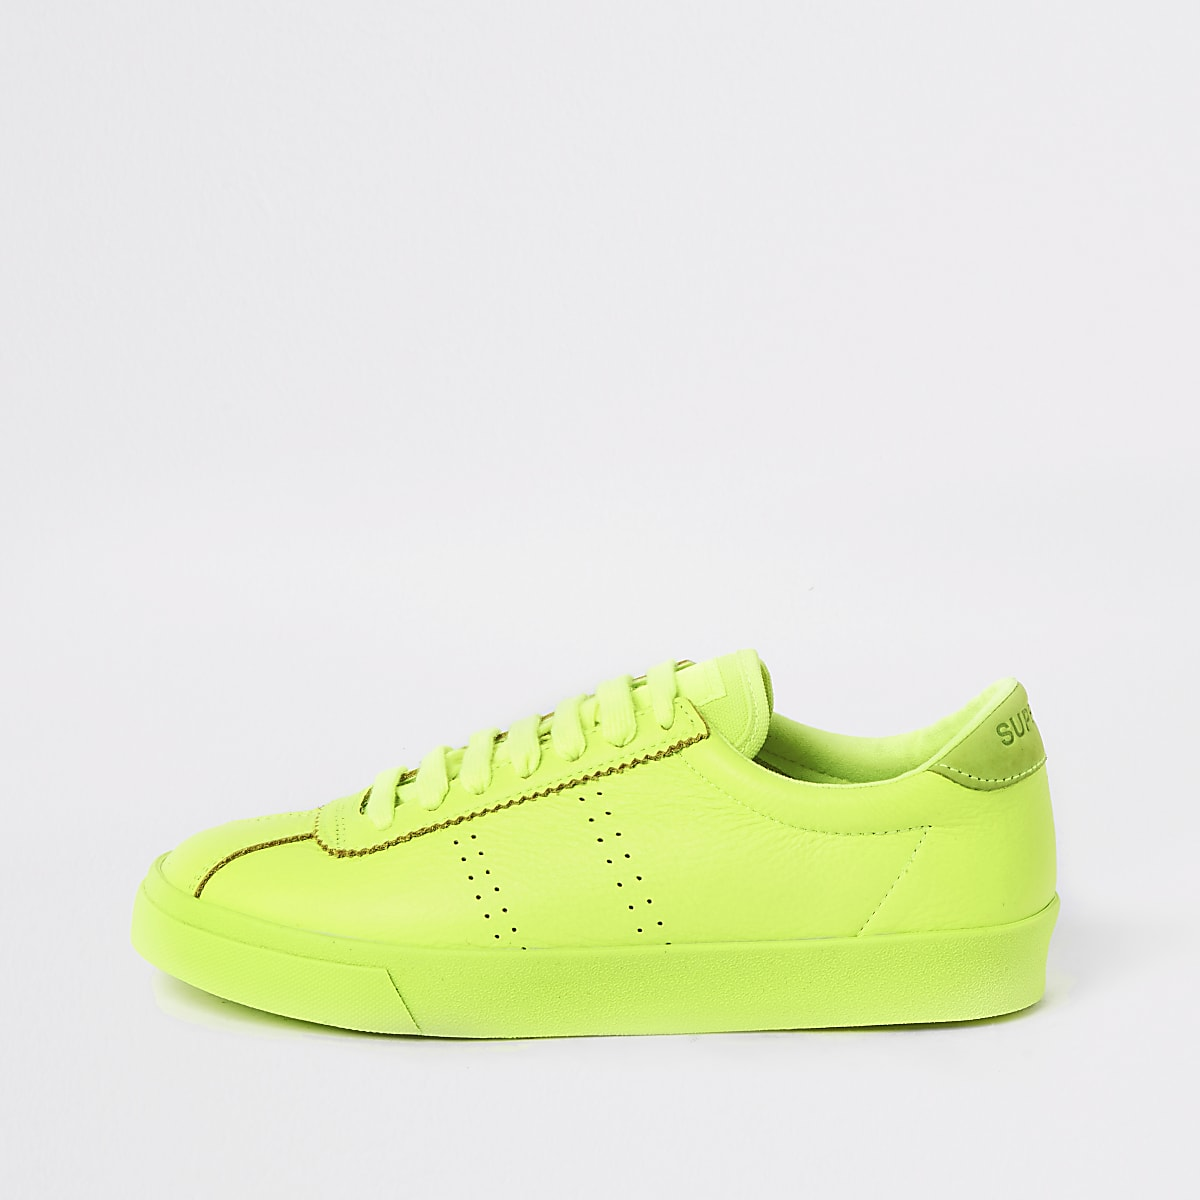 Superga bright green lace-up runner trainer